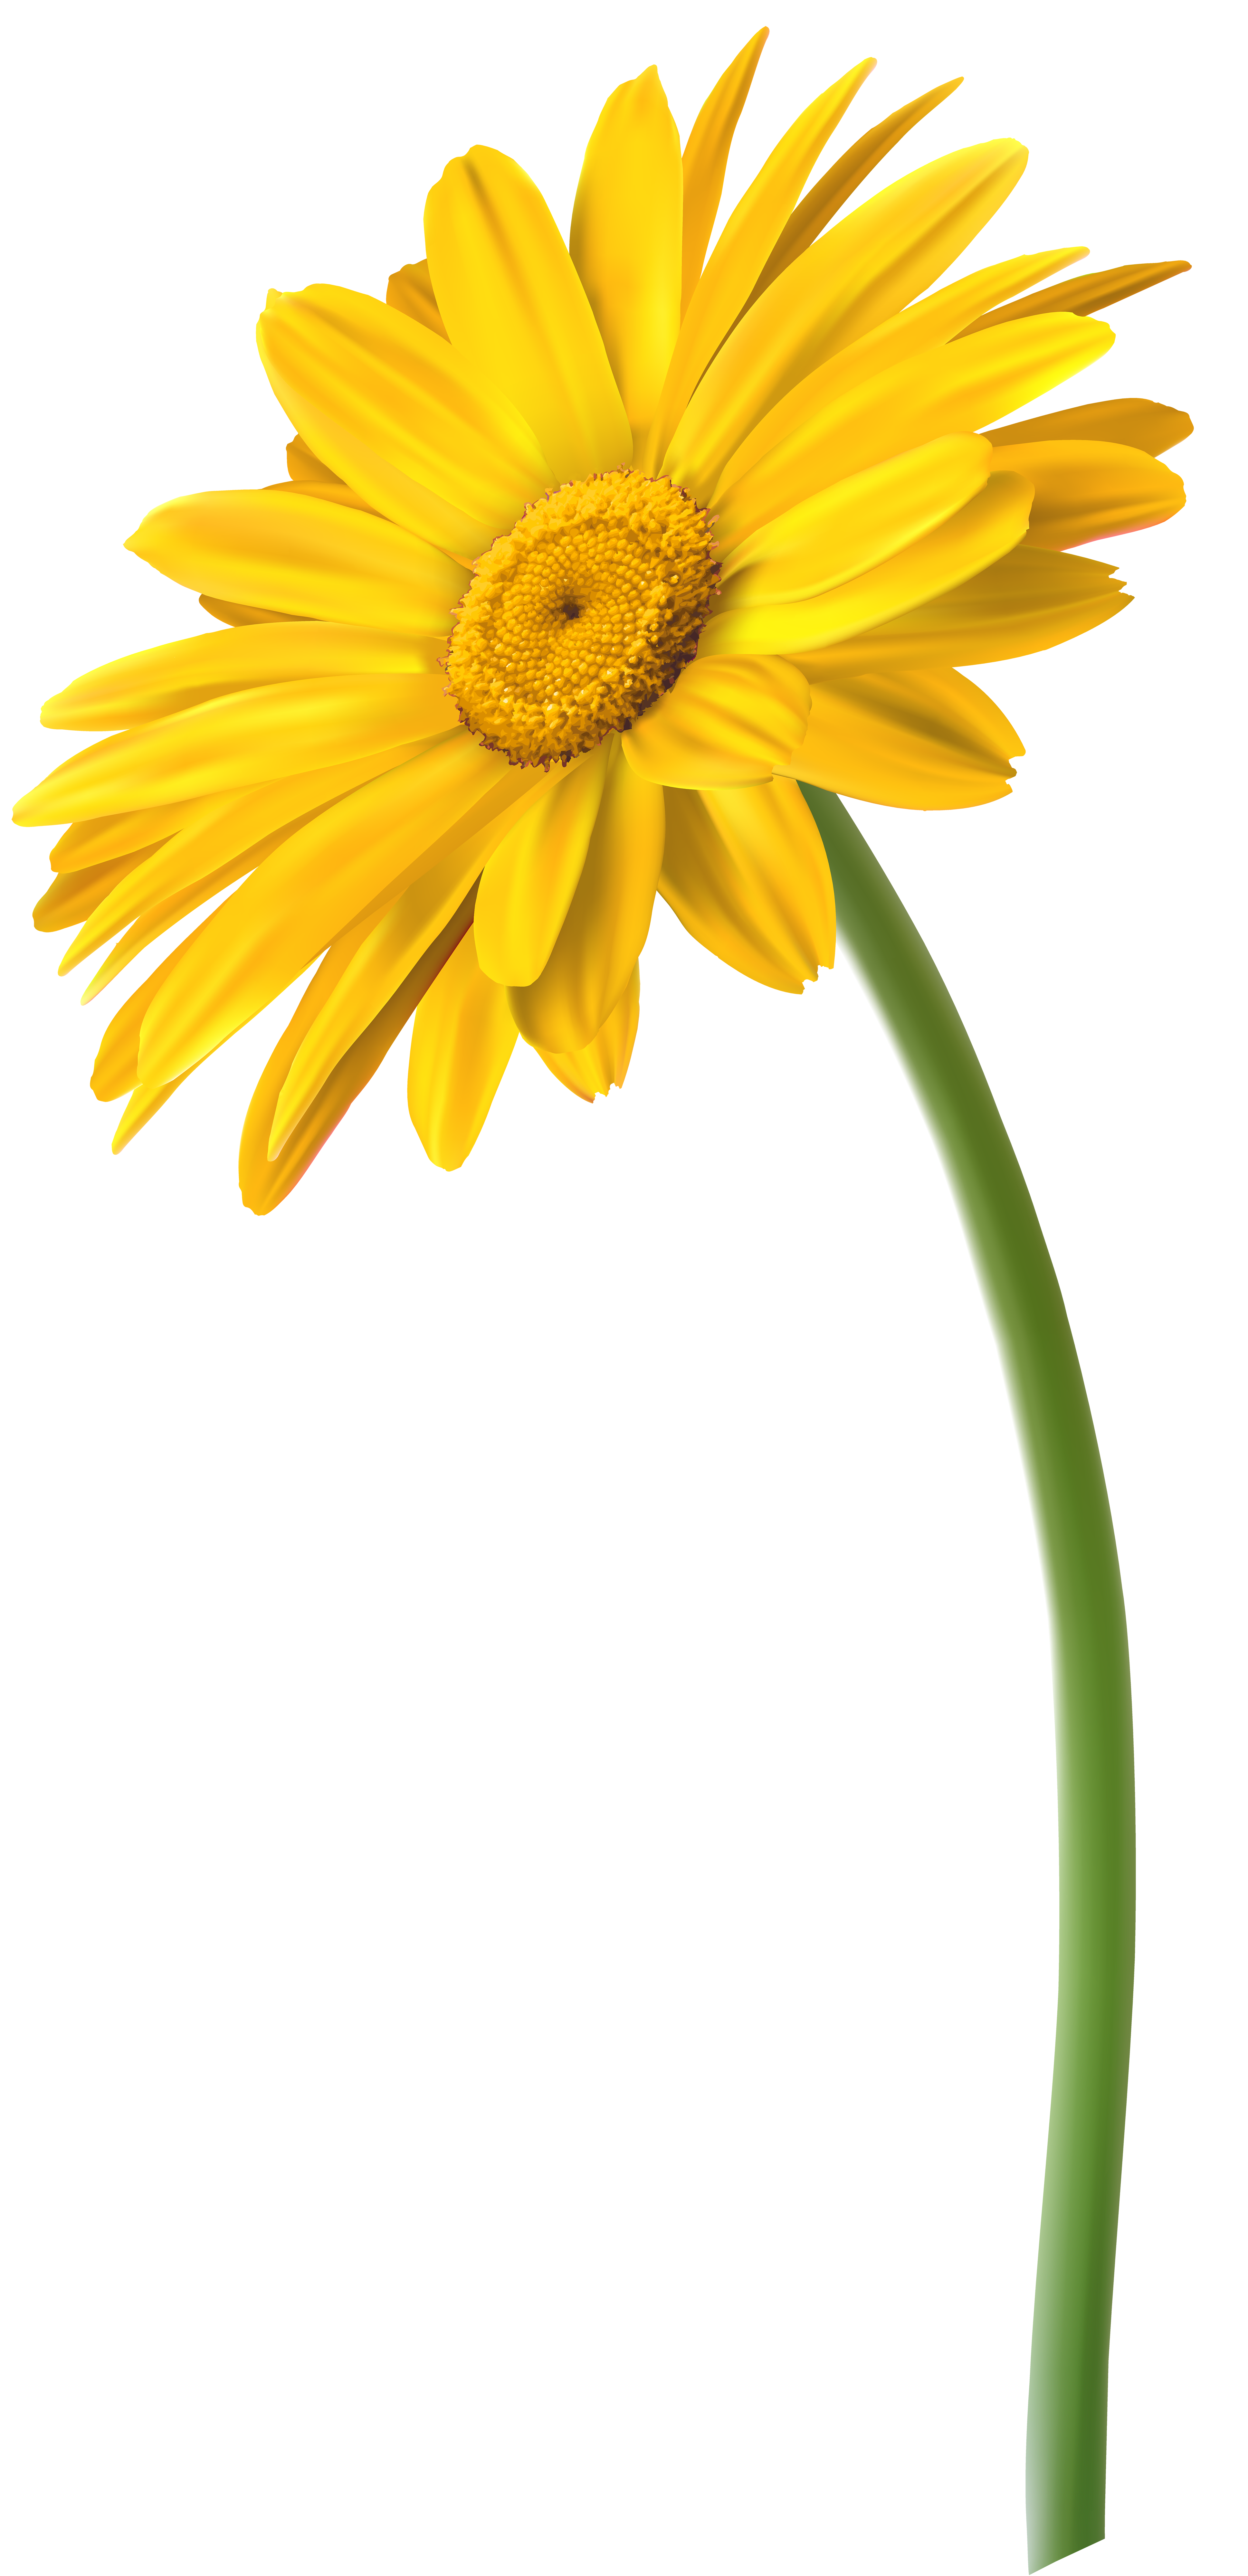 Yellow bell flower clipart picture royalty free download Yellow Gerbera Flower PNG Clip Art Image | Gallery Yopriceville ... picture royalty free download